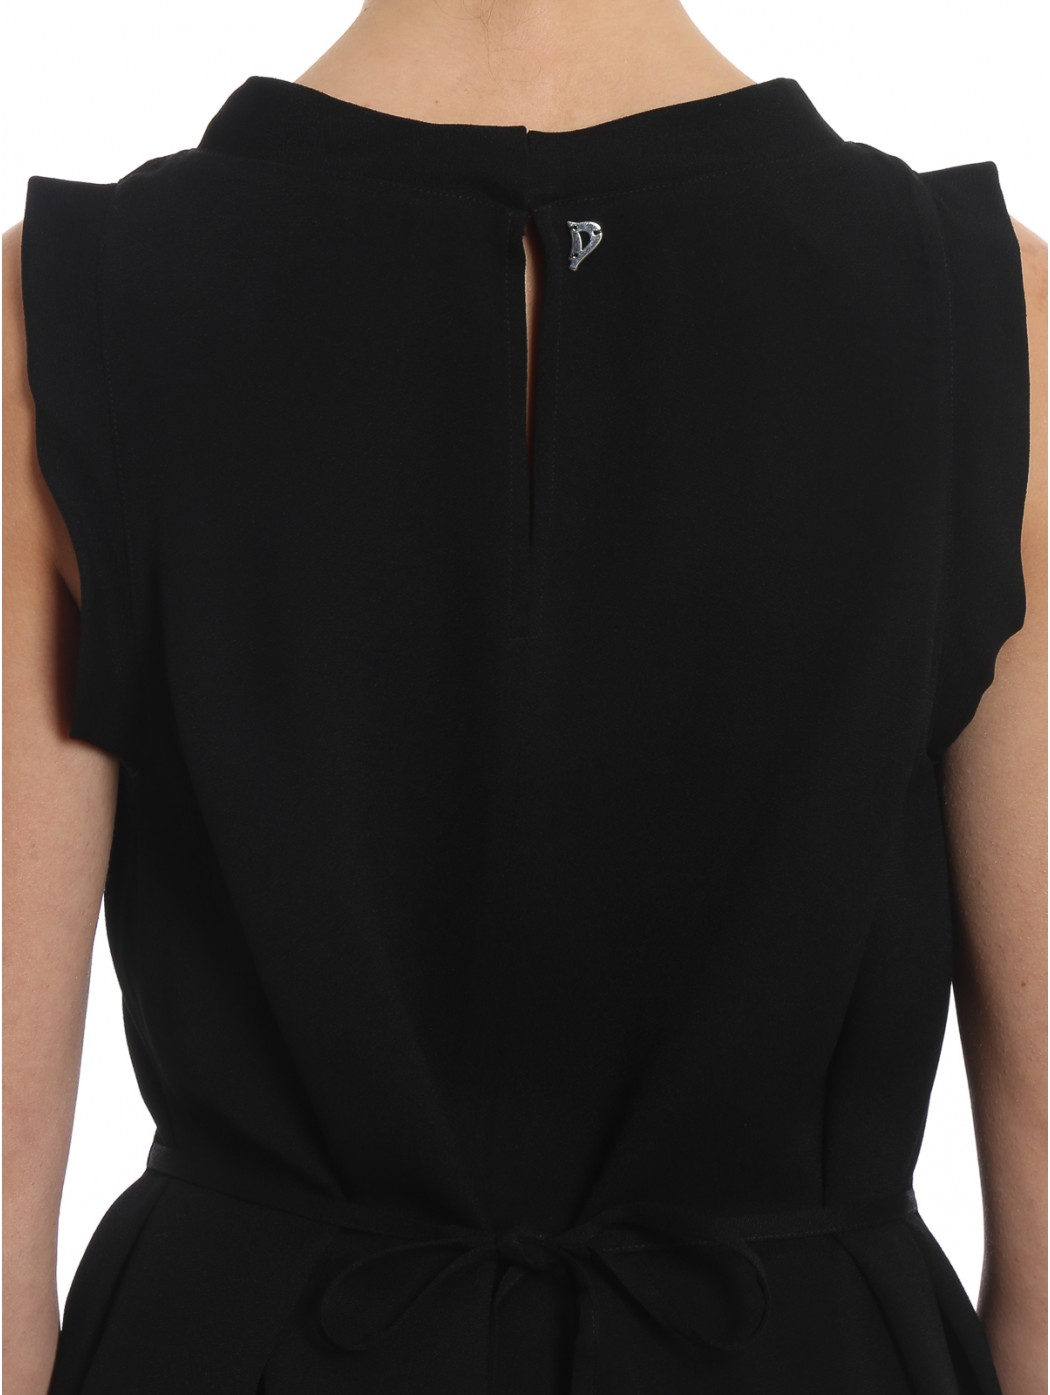 DONDUP DC065 999 CAMICIE